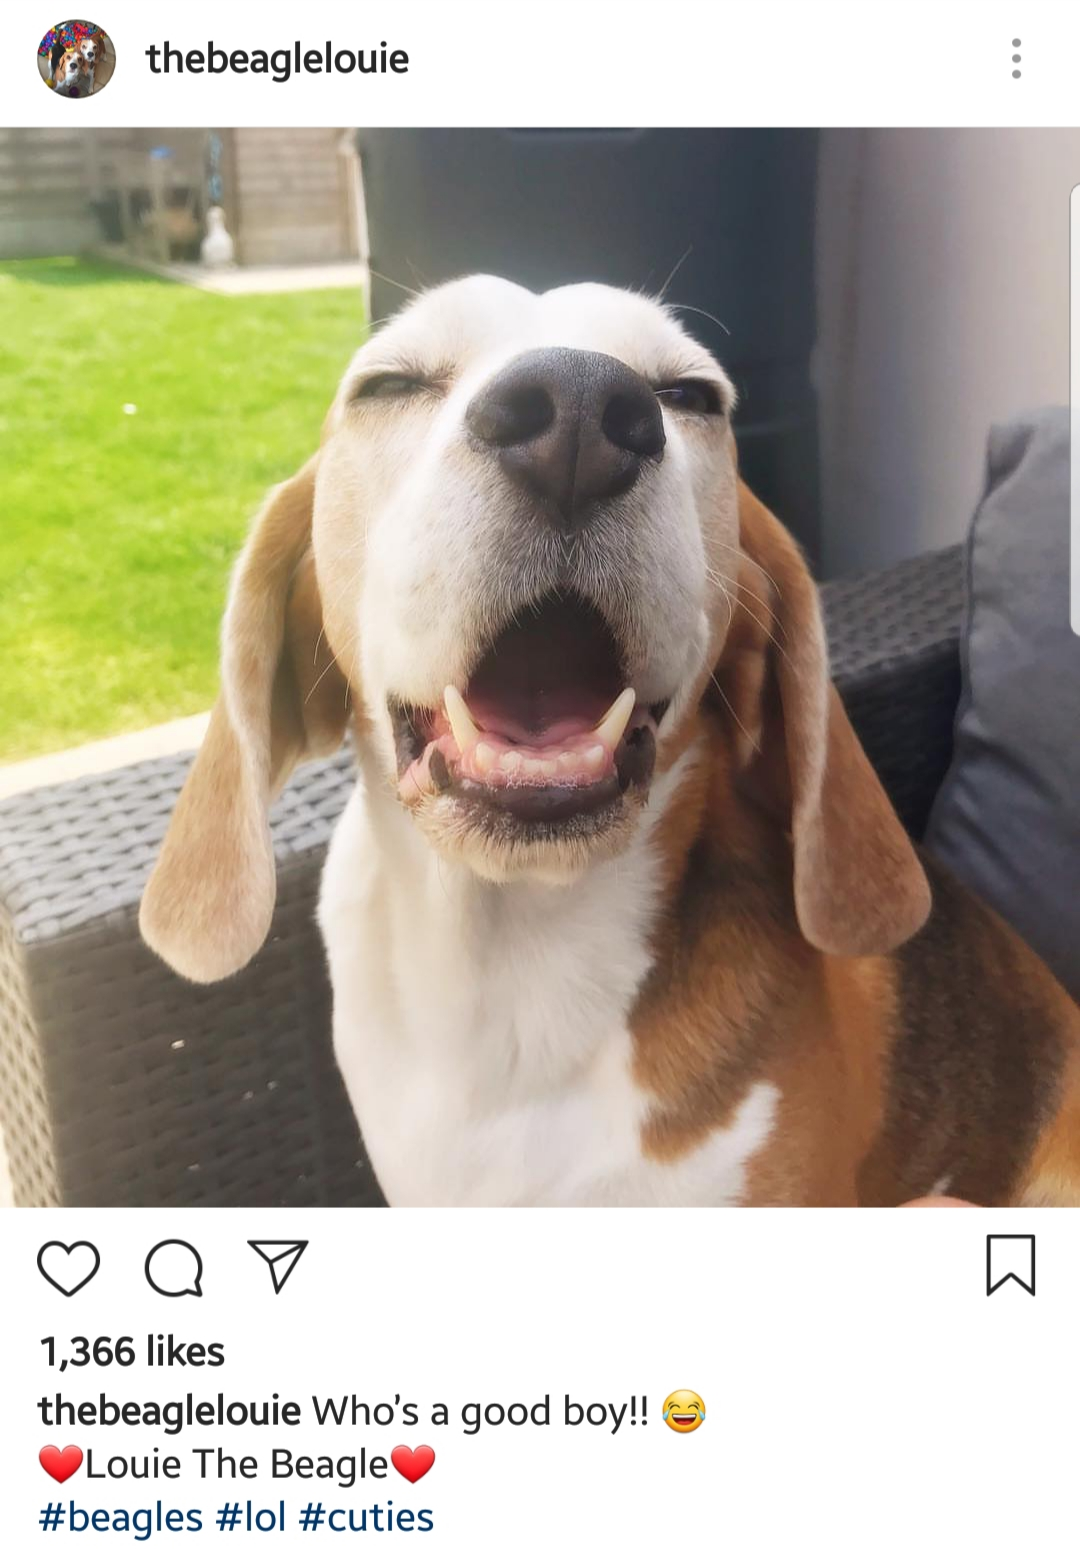 Louie the Beagle Instagram 1